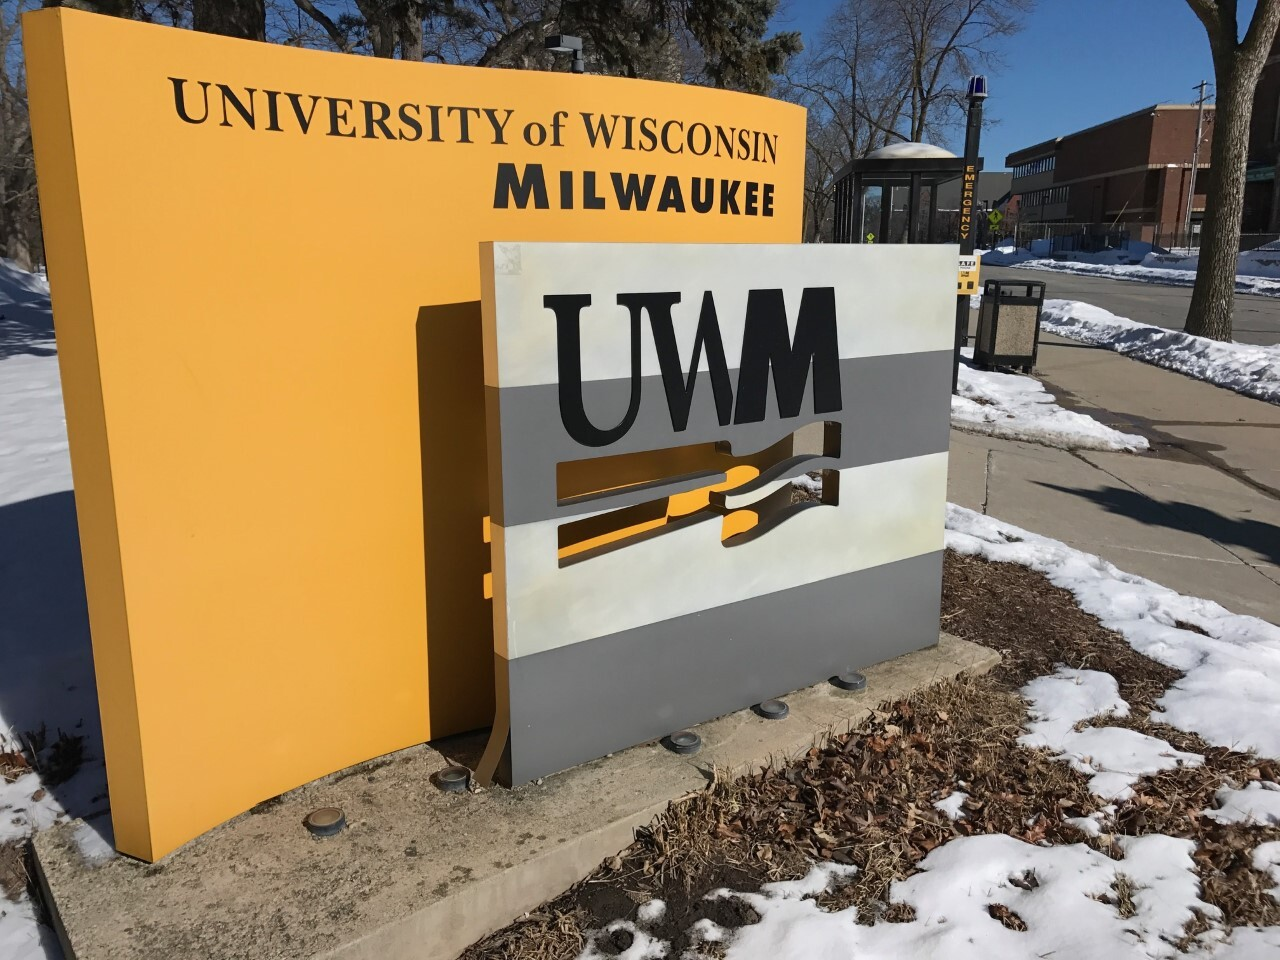 UW-Milwaukee gives tenth best value for Wisconsin education.